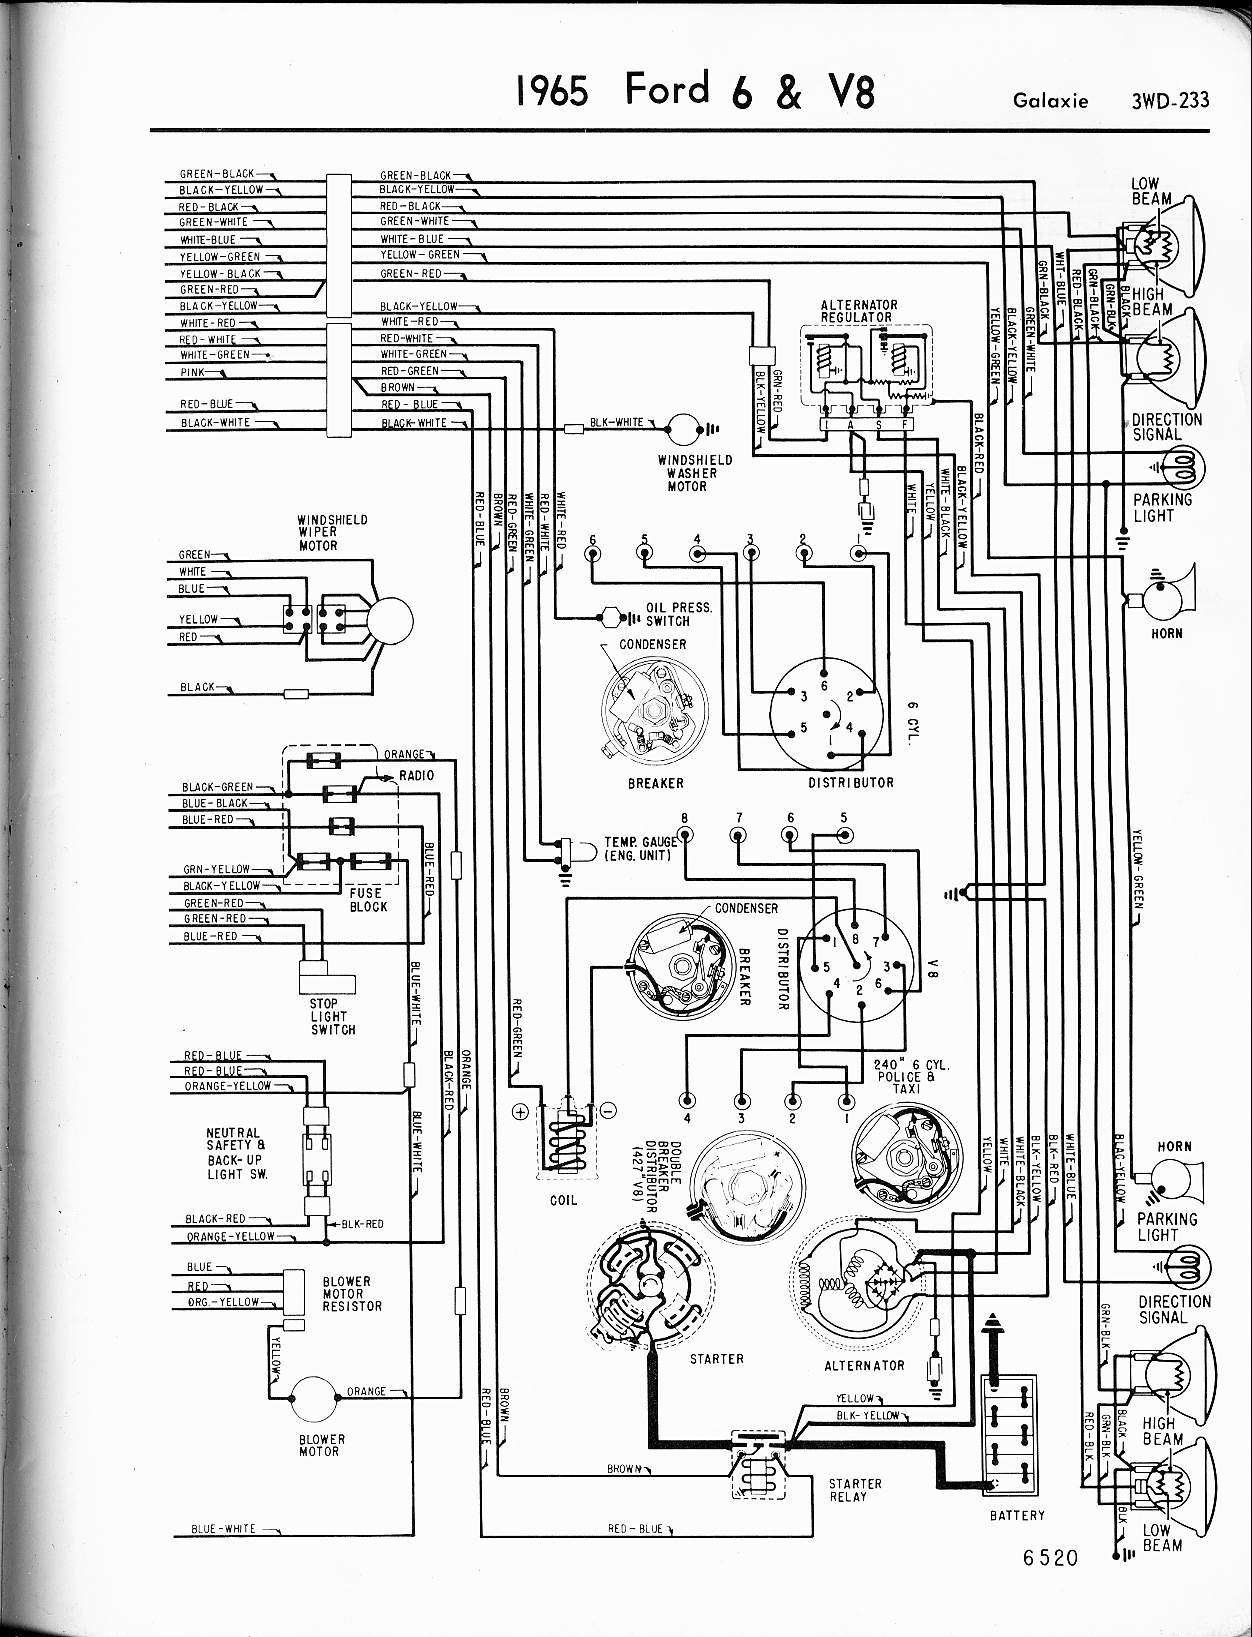 MWire5765 233 57 65 ford wiring diagrams 1965 mustang wiring diagram pdf at couponss.co